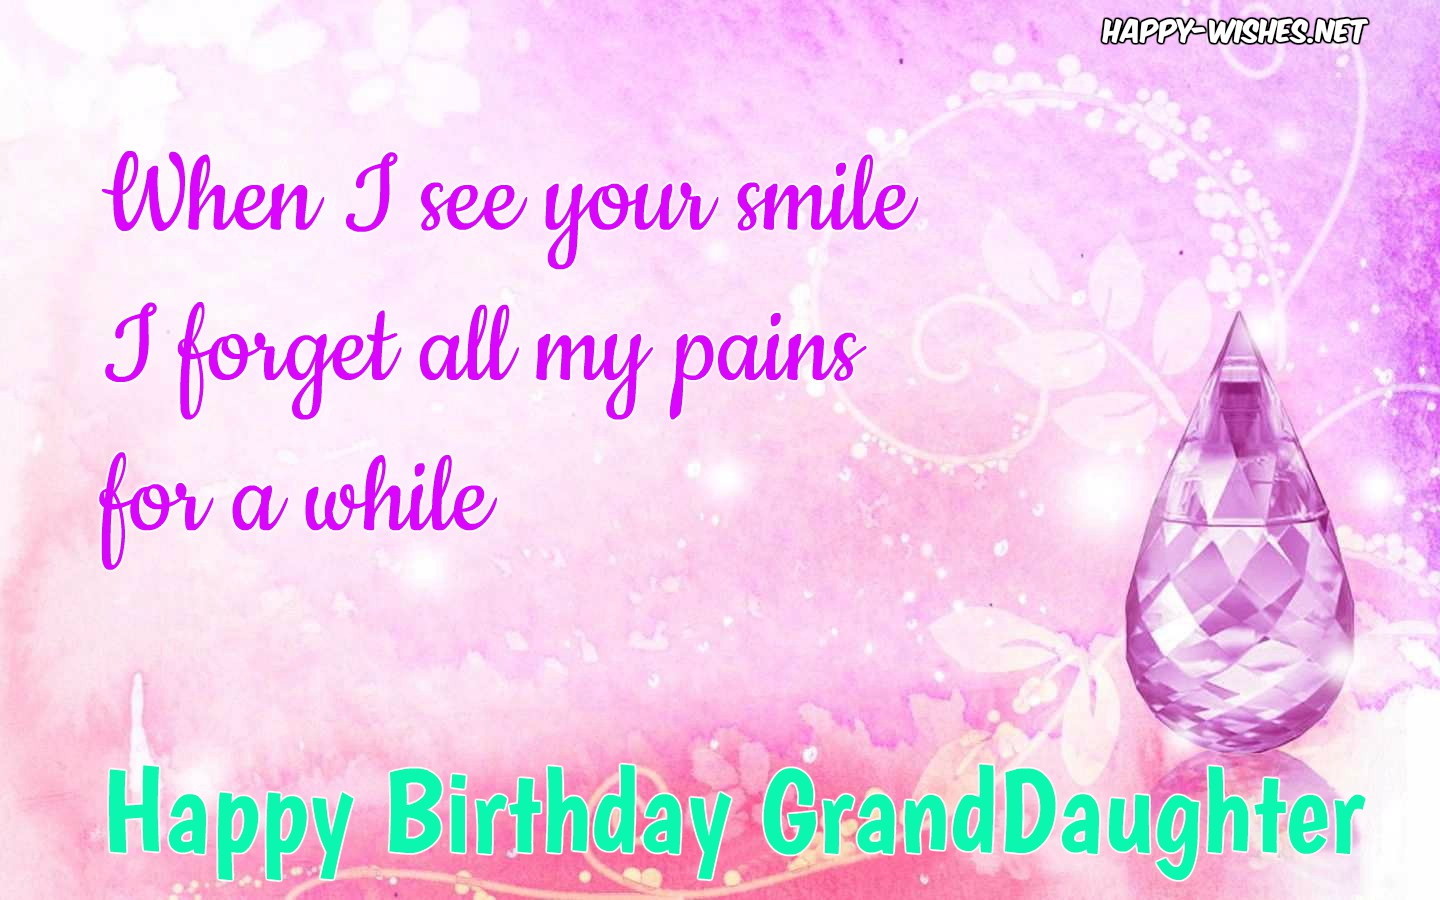 50+ Special Birthday Messages For Your Spectacular Granddaughter